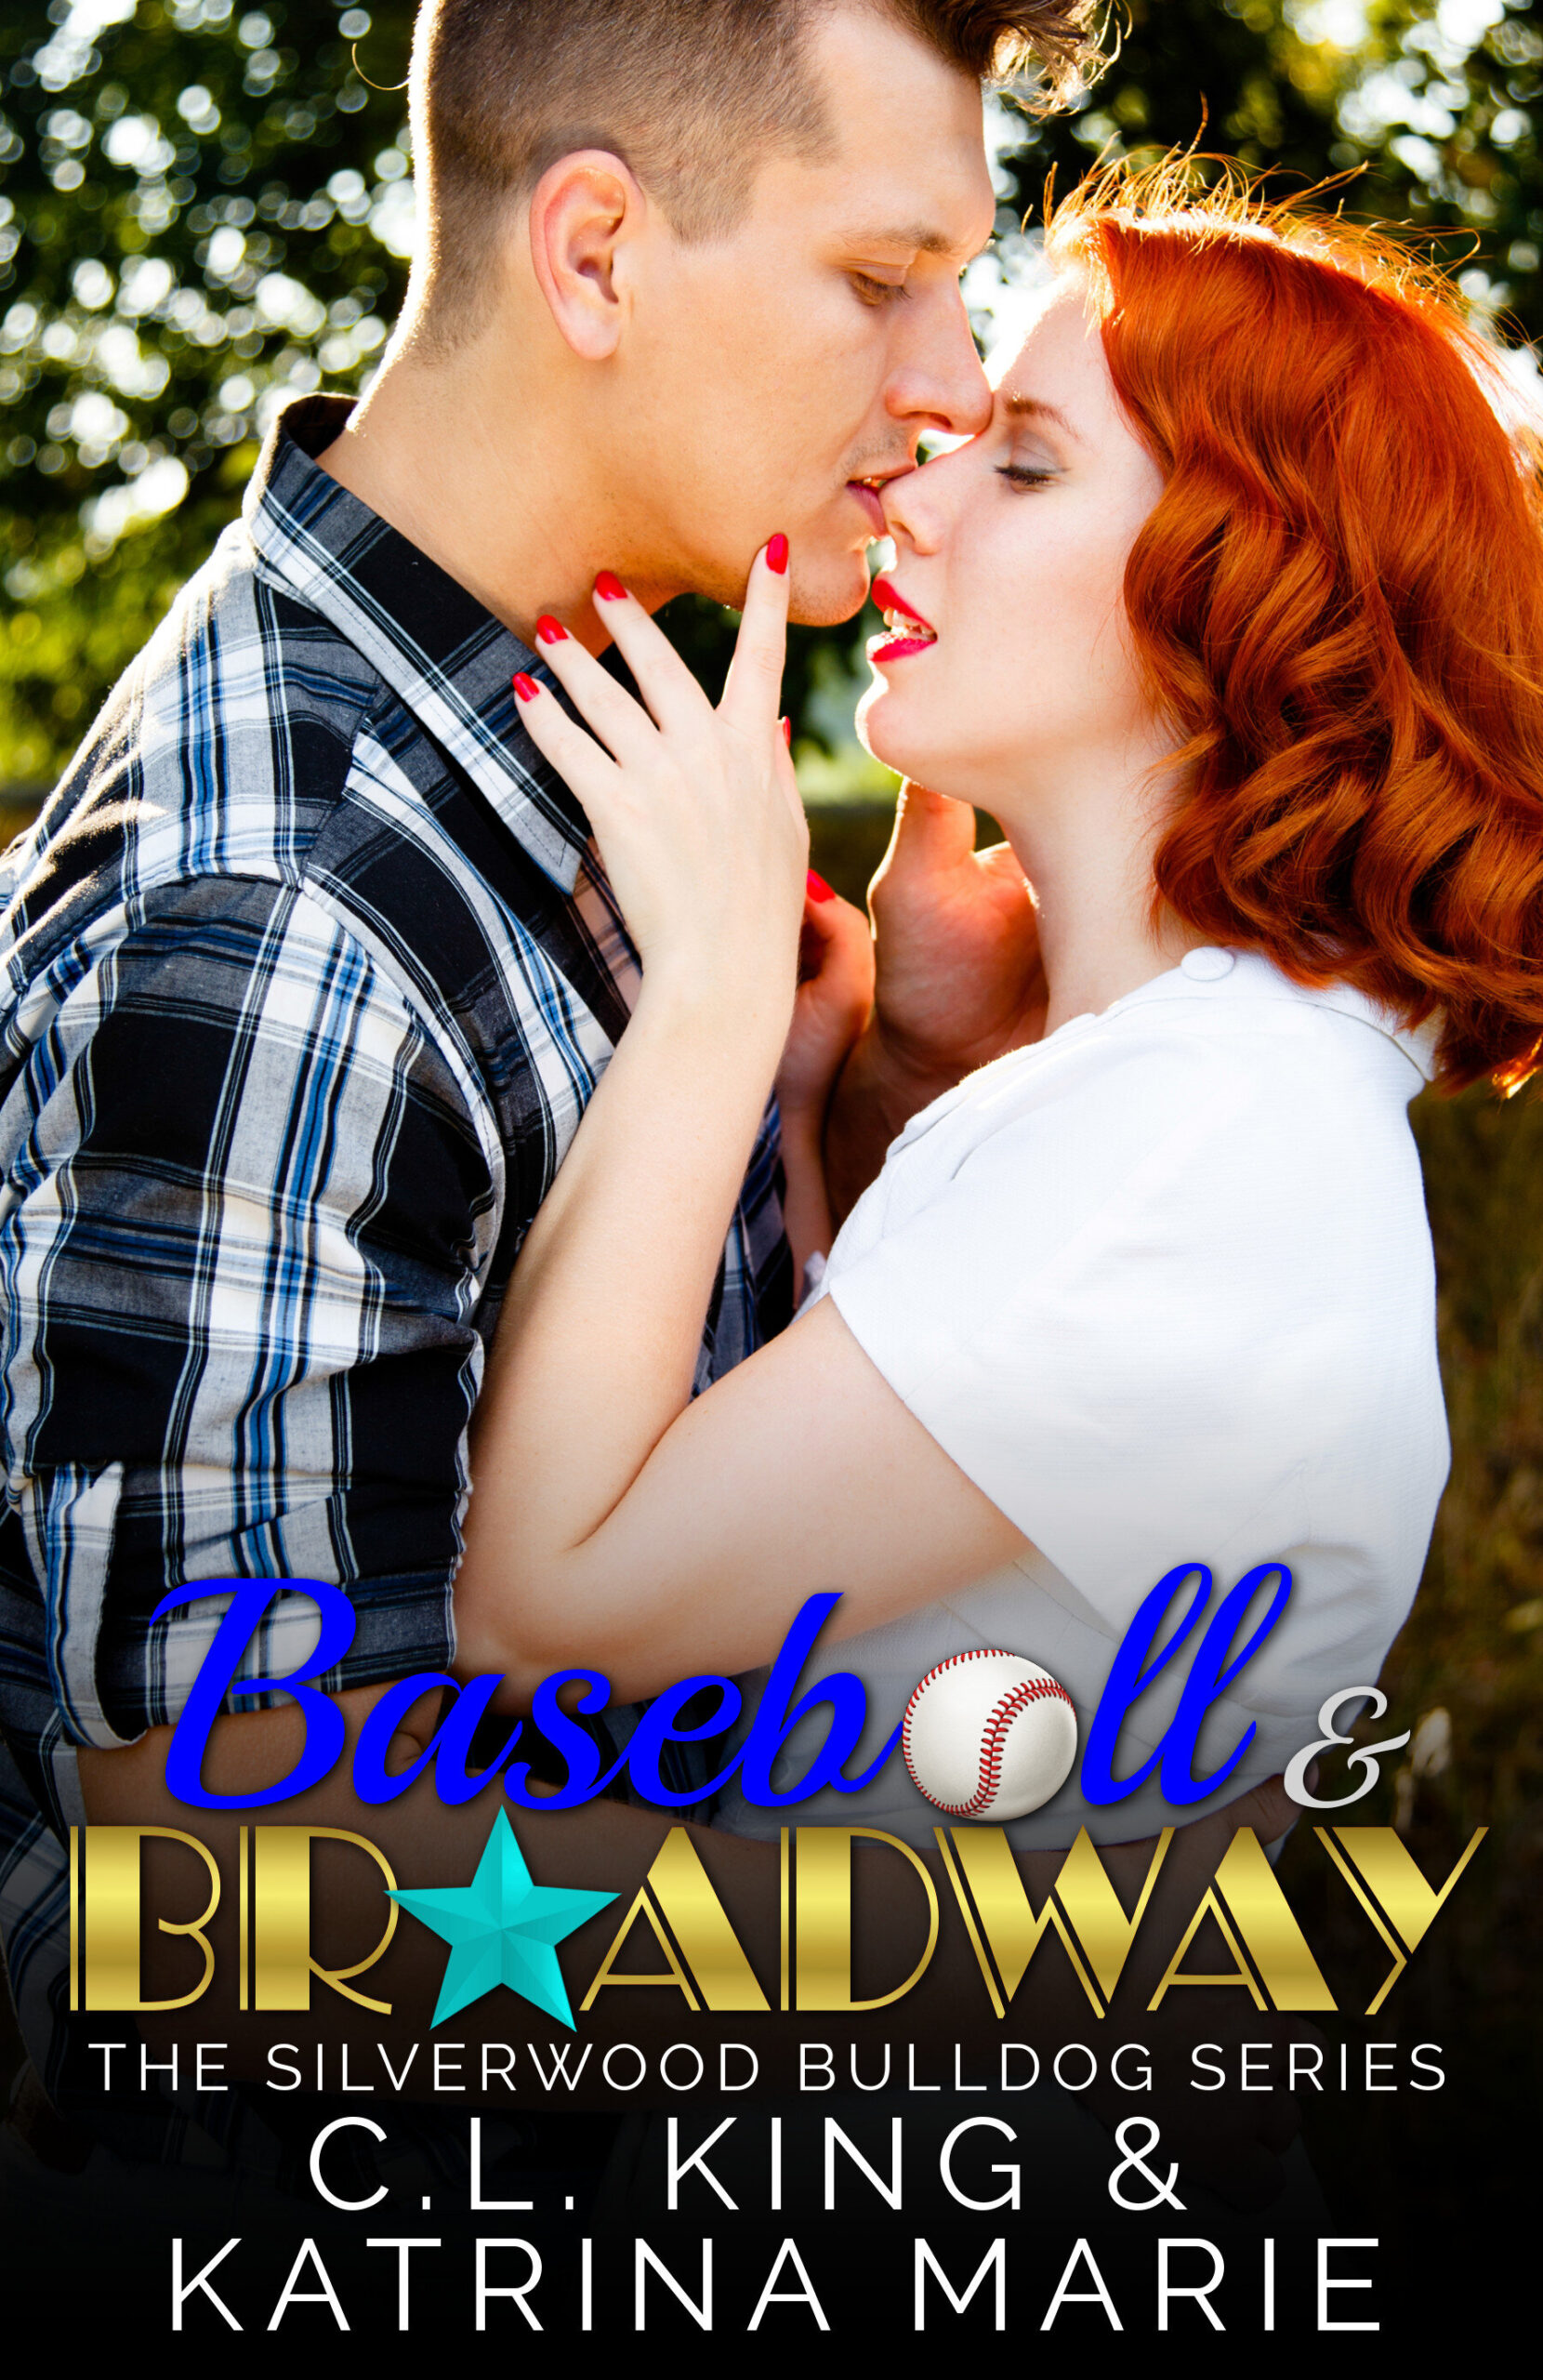 Cover Reveal for BASEBALL & BROADWAY